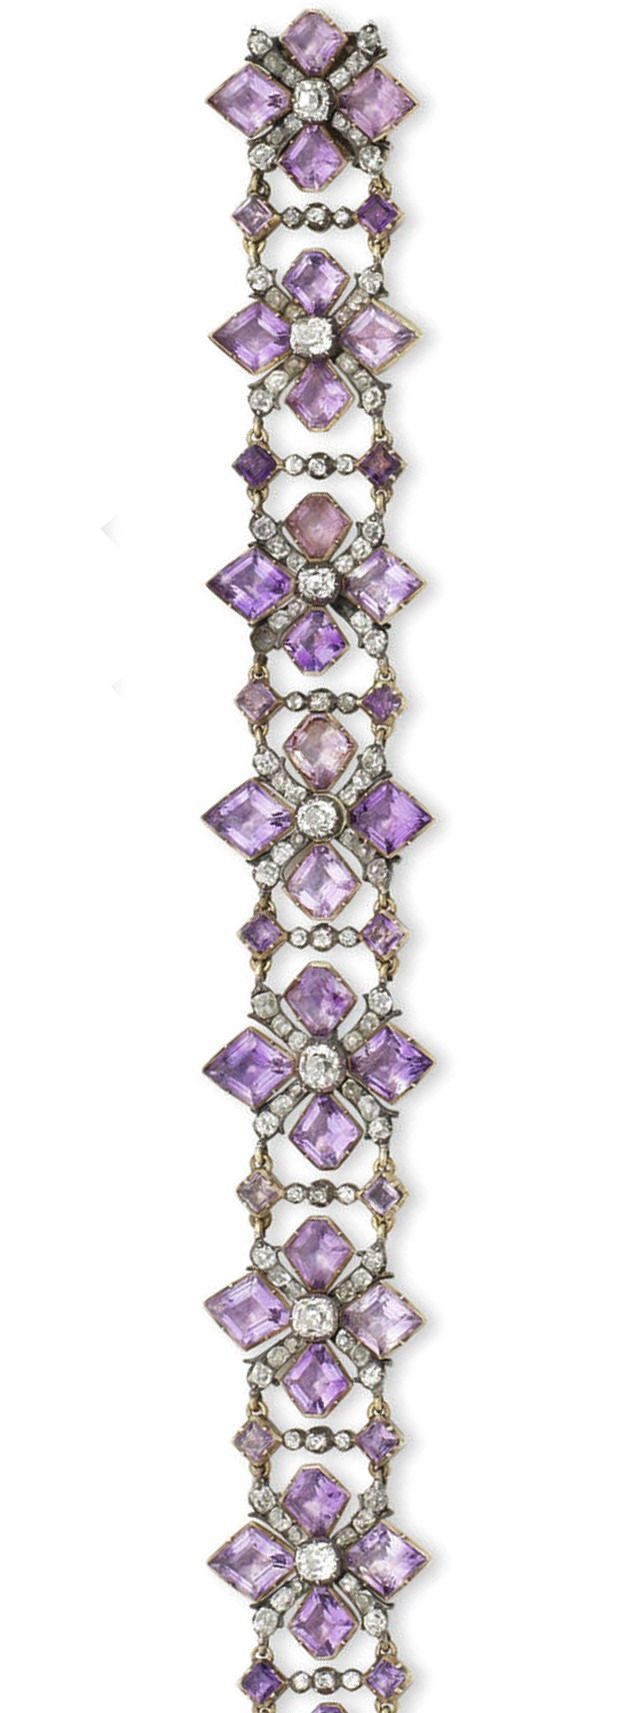 A rare 18th century amethyst and diamond bracelet. The openwork strap composed of kite-shaped amethysts and cushion-shaped and old brilliant-cut diamond quatrefoils, mounted in silver and gold, closed-back settings throughout, length 28.0cm, fitted and tooled leather case